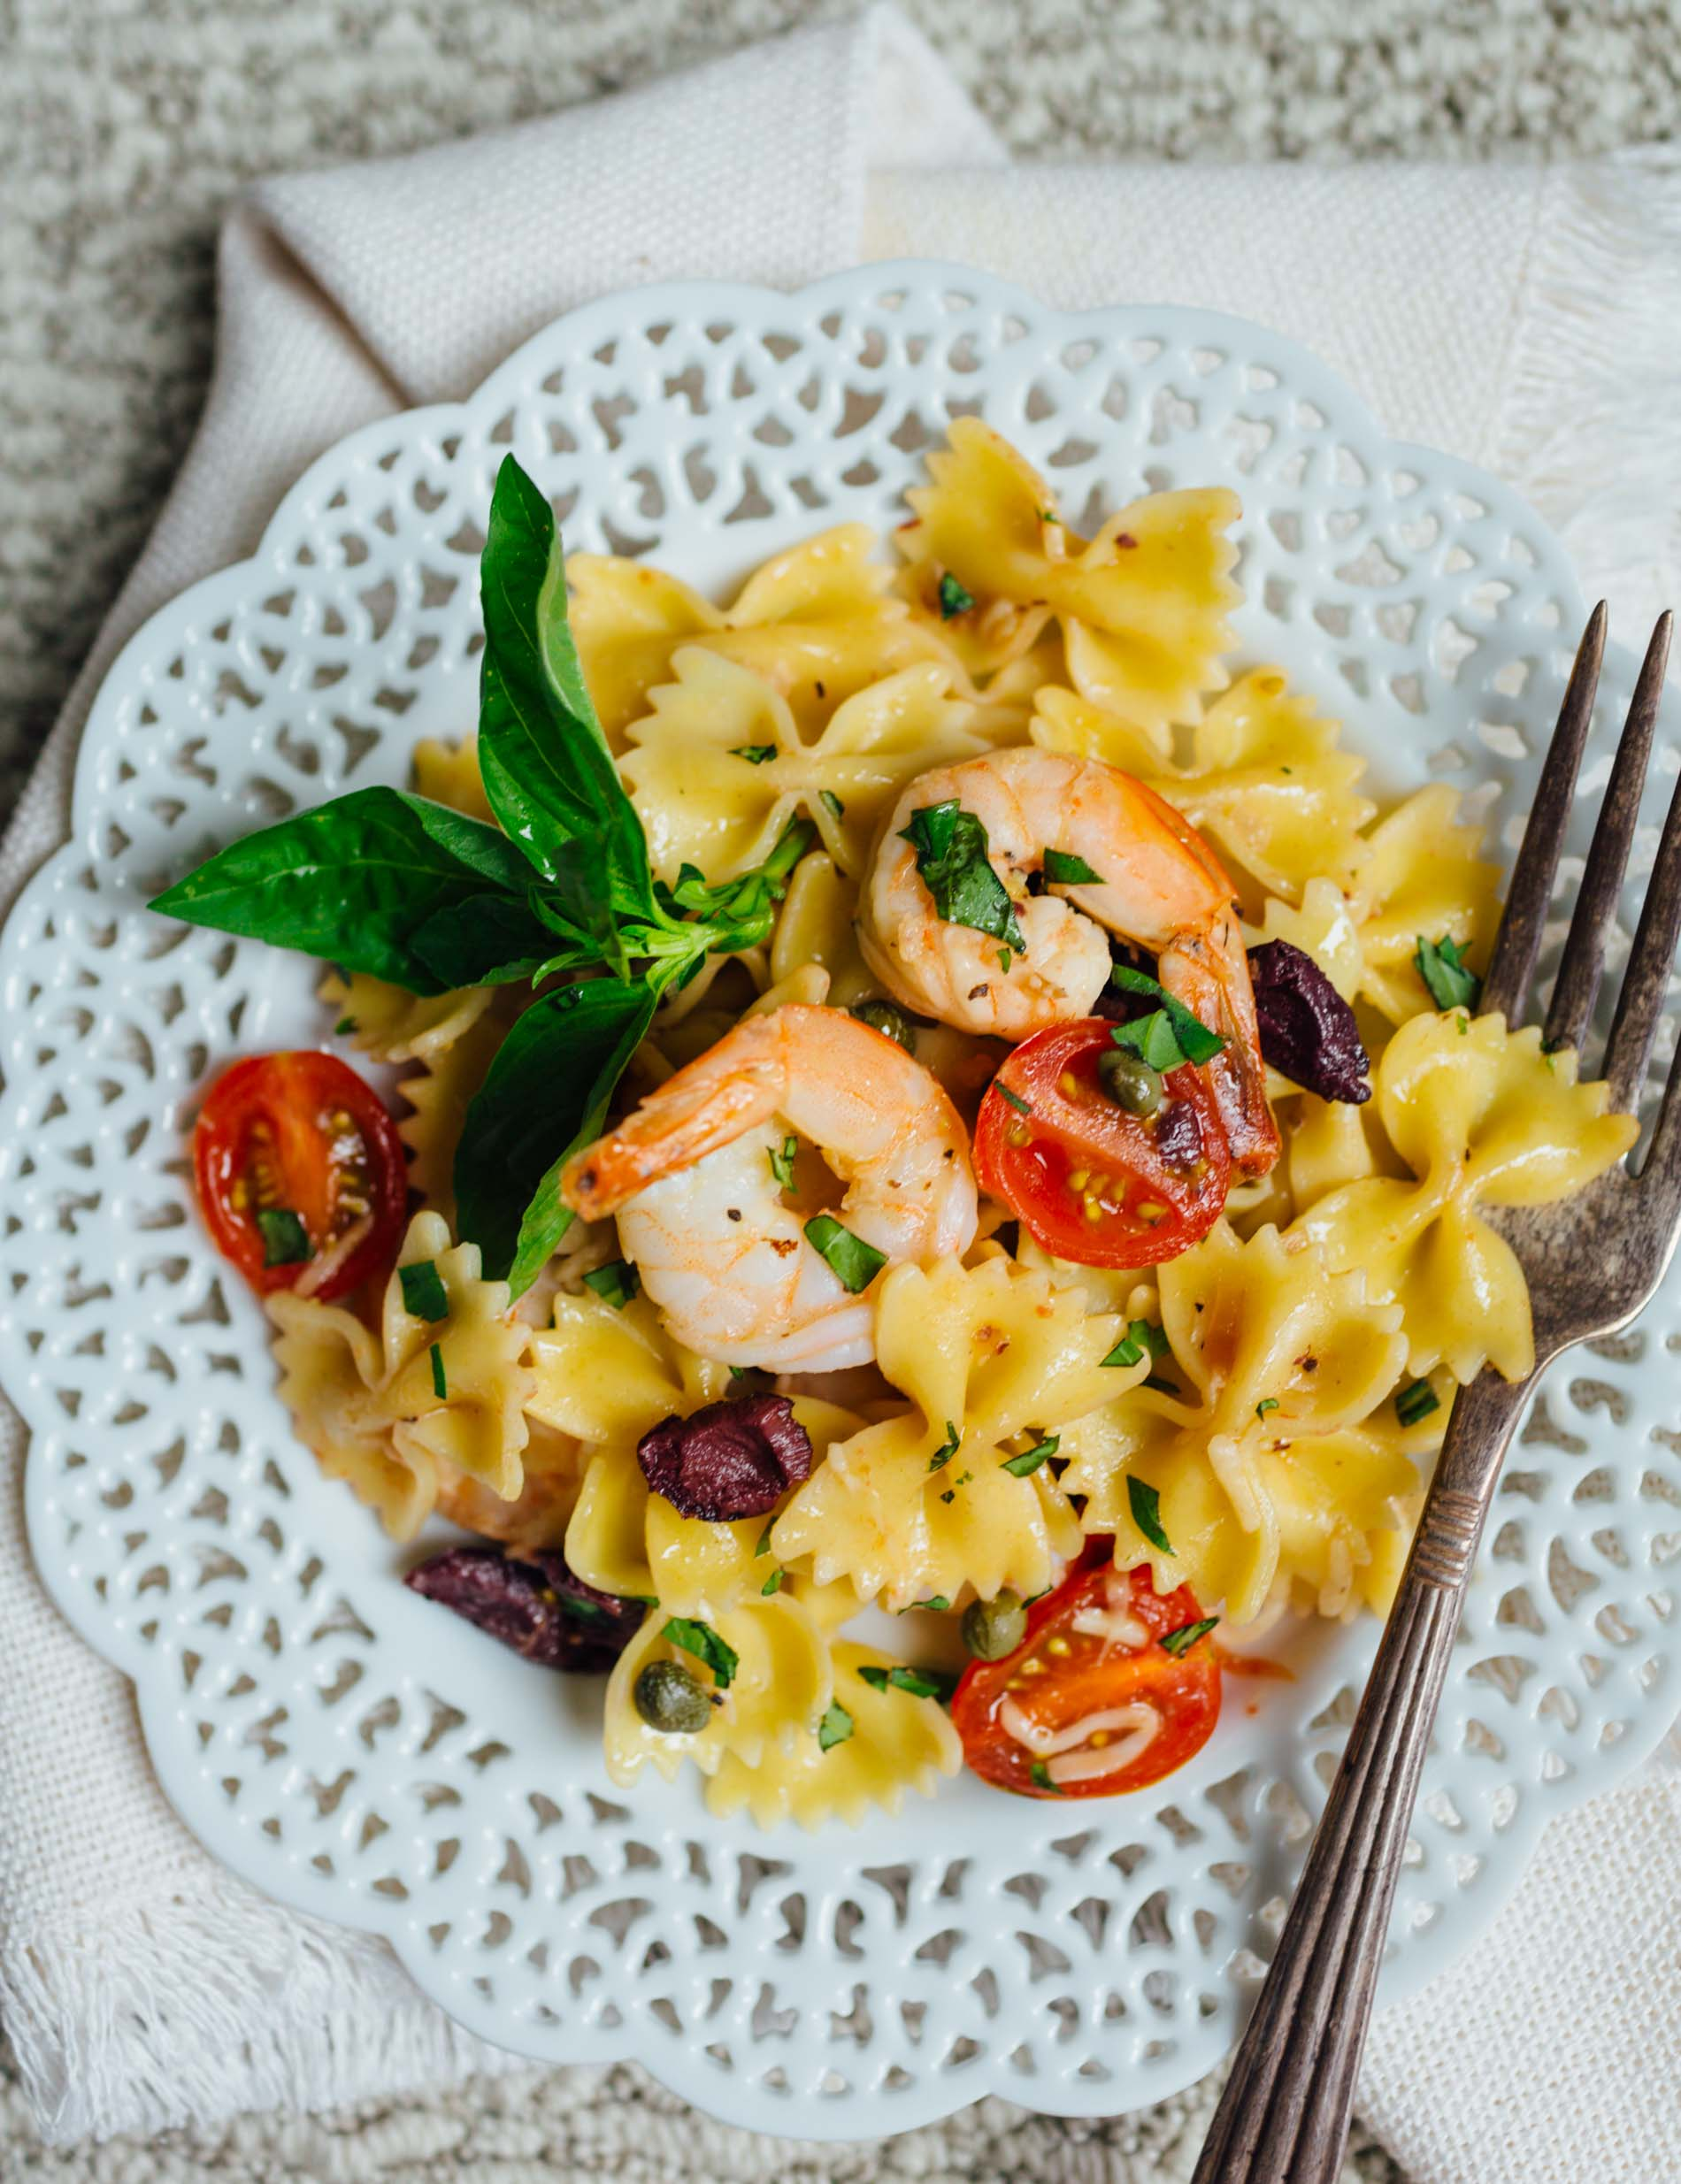 make this light and refreshing pasta dish! It is tossed with olive oil, lemon juice, and shrimp for a fresh and clean tasting Mediterranean dish packed with loads of flavor!